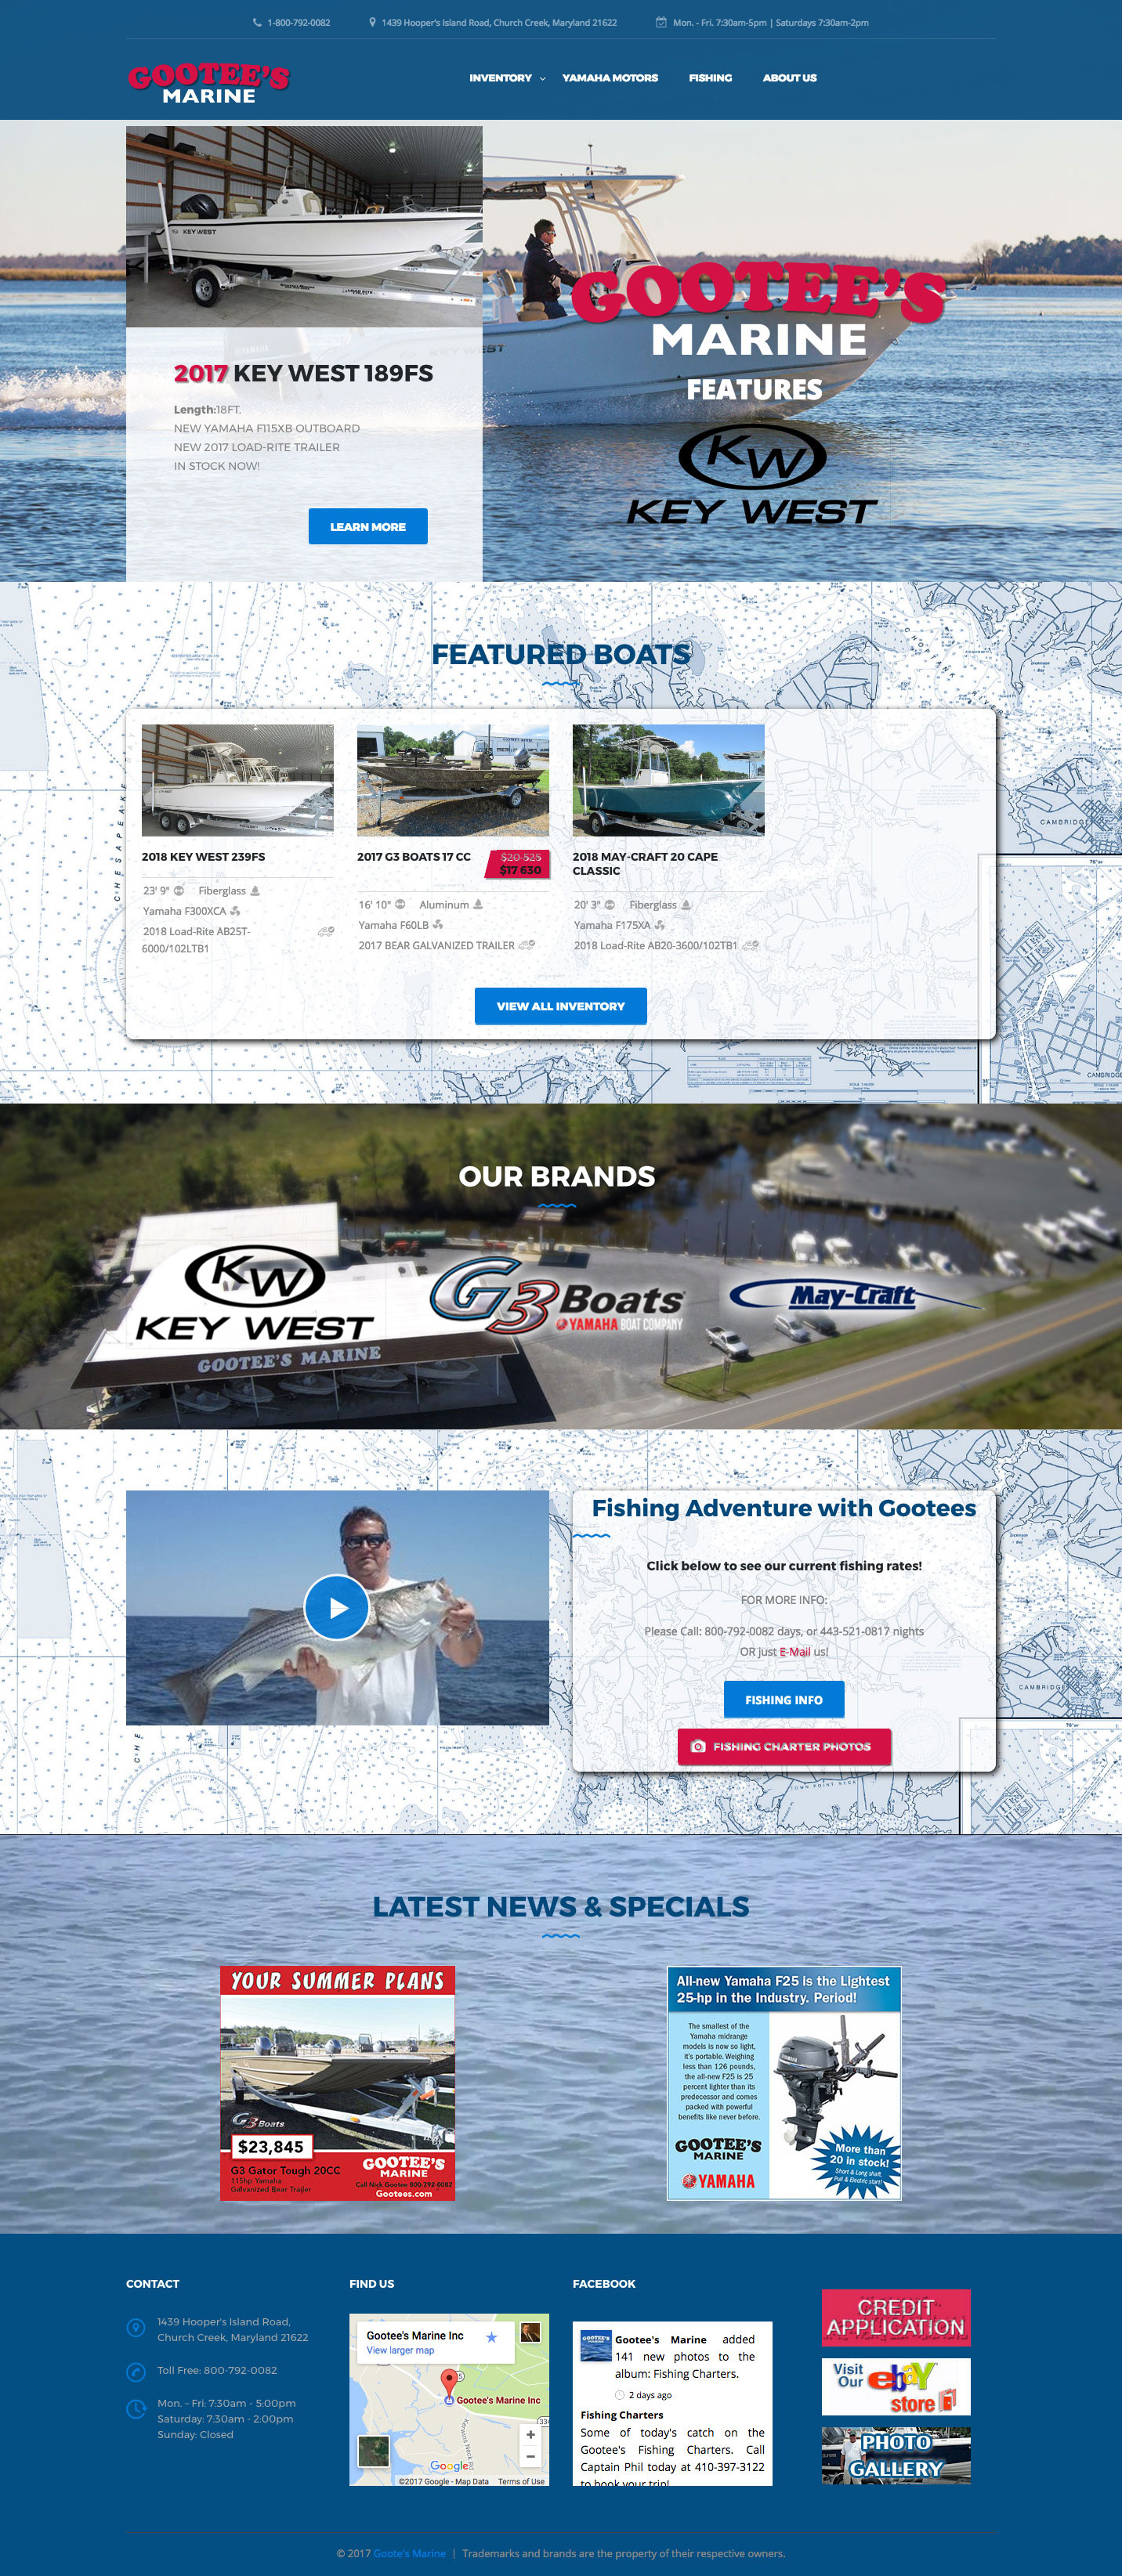 Marine Dealership Website